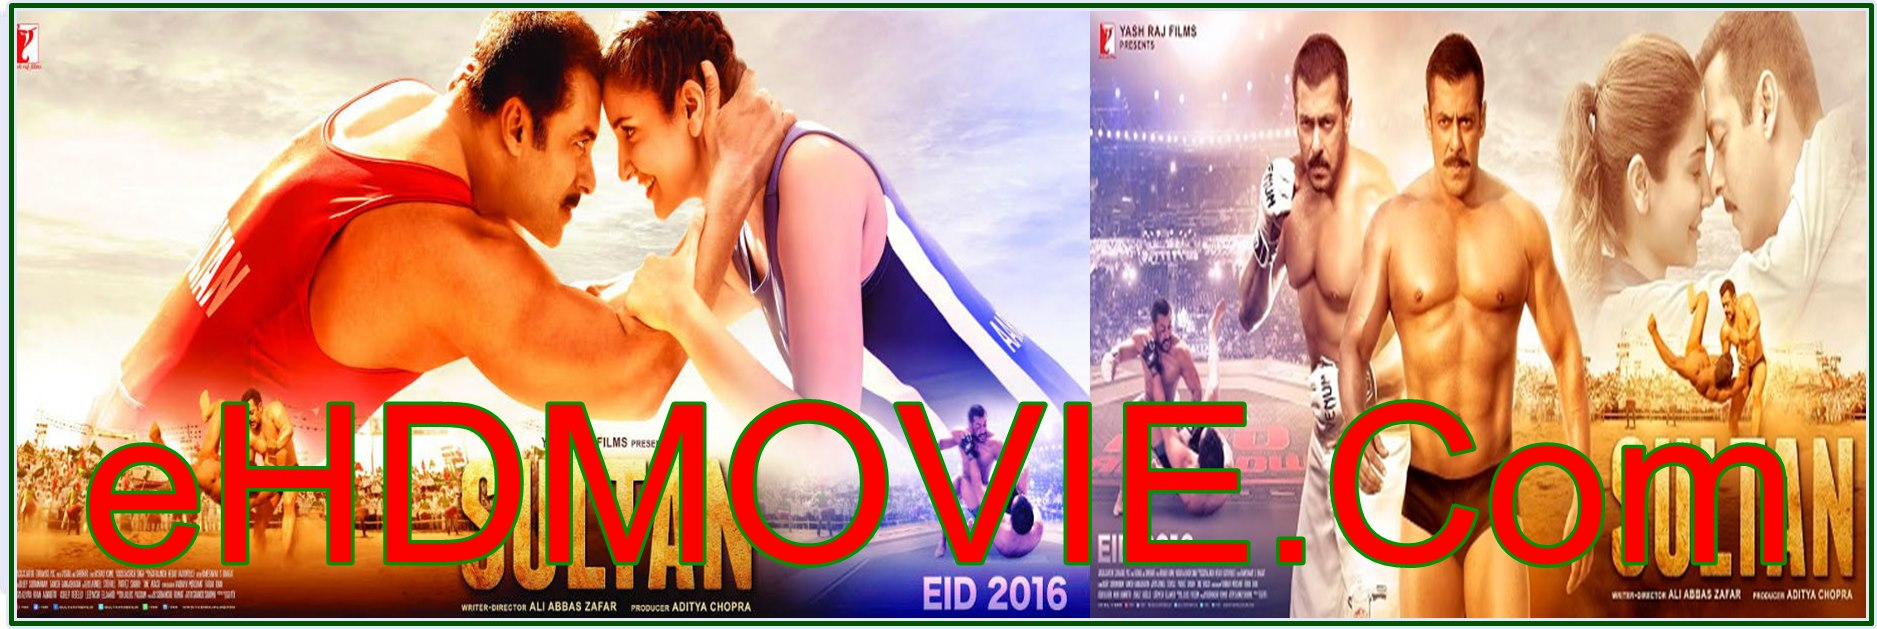 Sultan 2016 Full Movie Hindi 720p - 480p ORG BRRip 500MB - 1.2GB ESubs Free Download